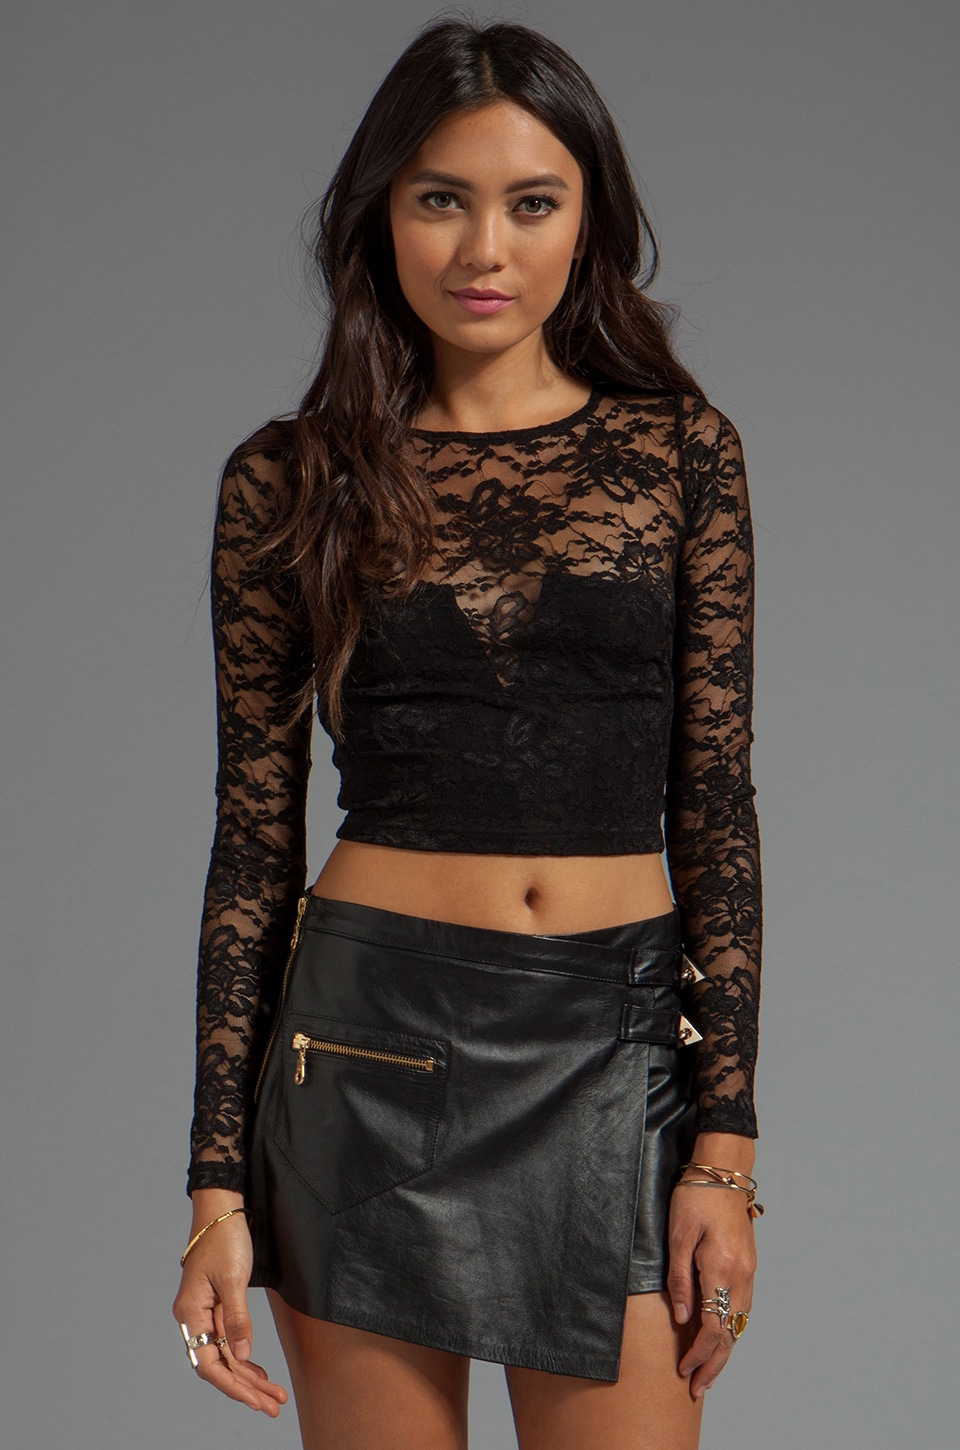 Nookie Teen Spirit Crop Top in Black